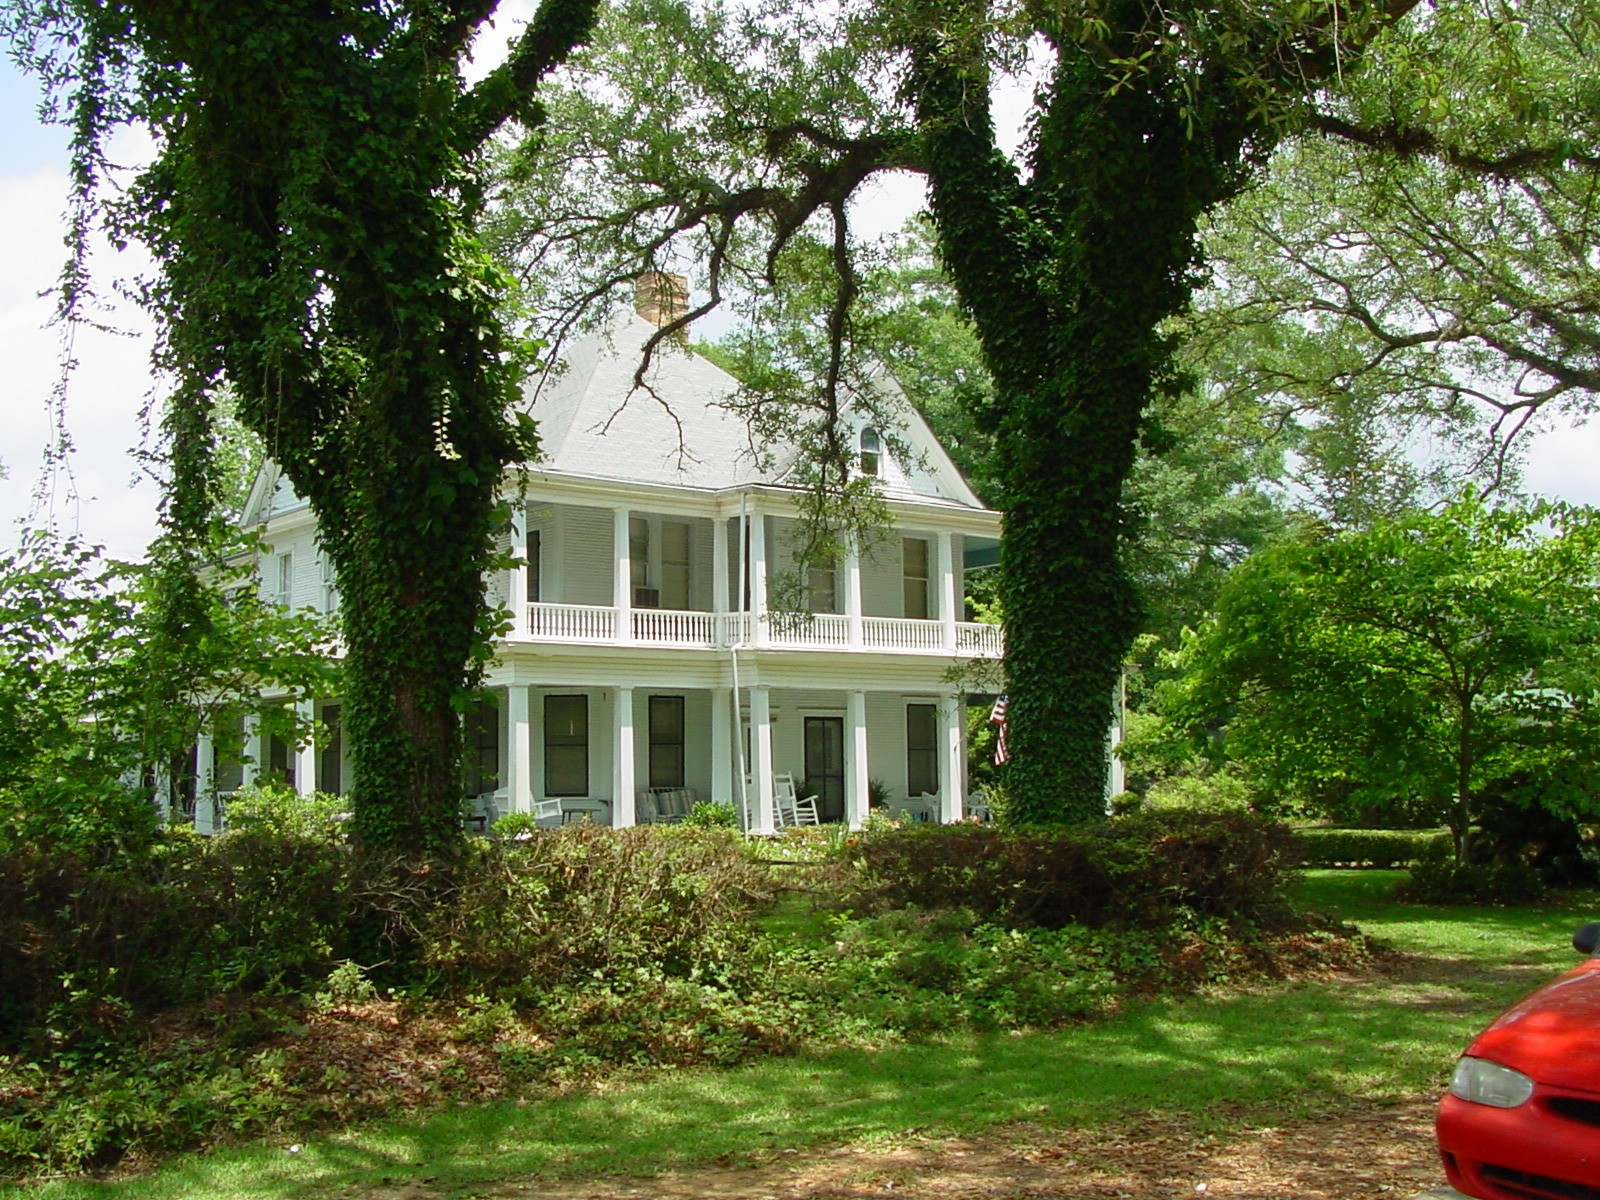 Many grand old houses to stay in during your barber training in Alabama